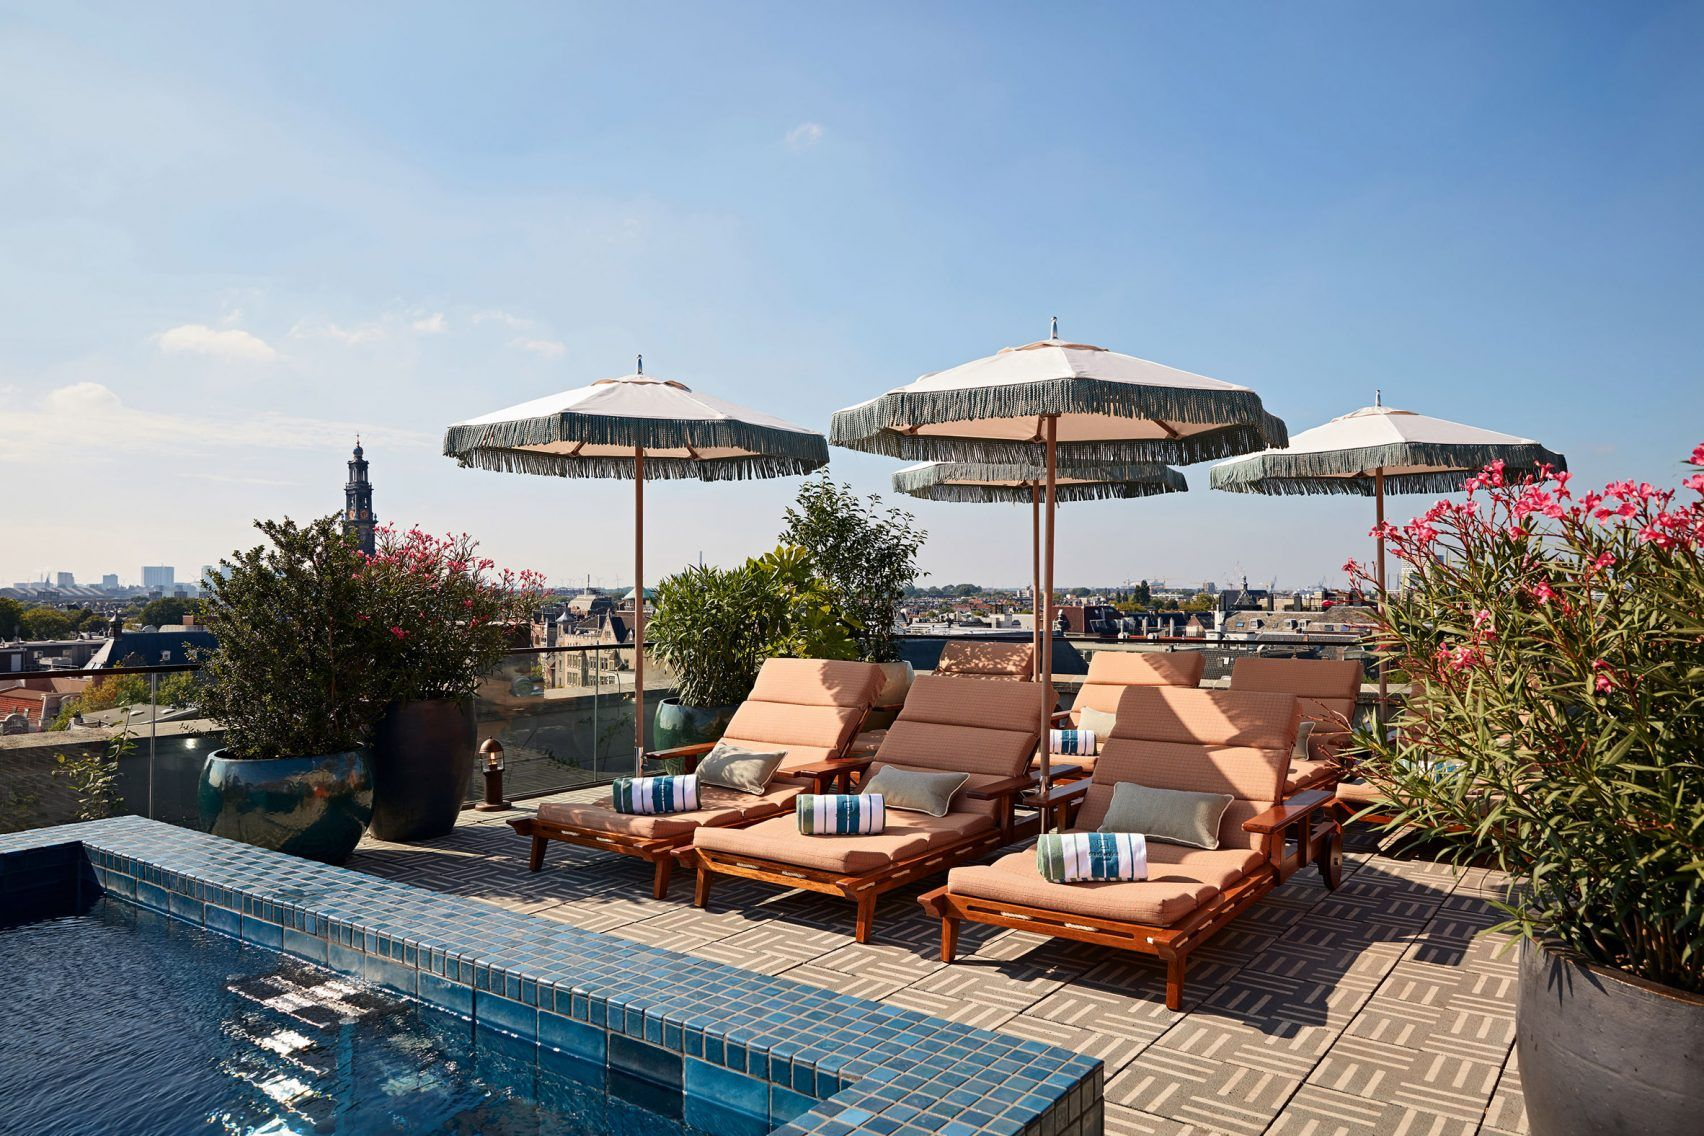 Hotel Zwembad Op Dak Amsterdam Soho House Amsterdam Design Outdoor Furniture Soho House